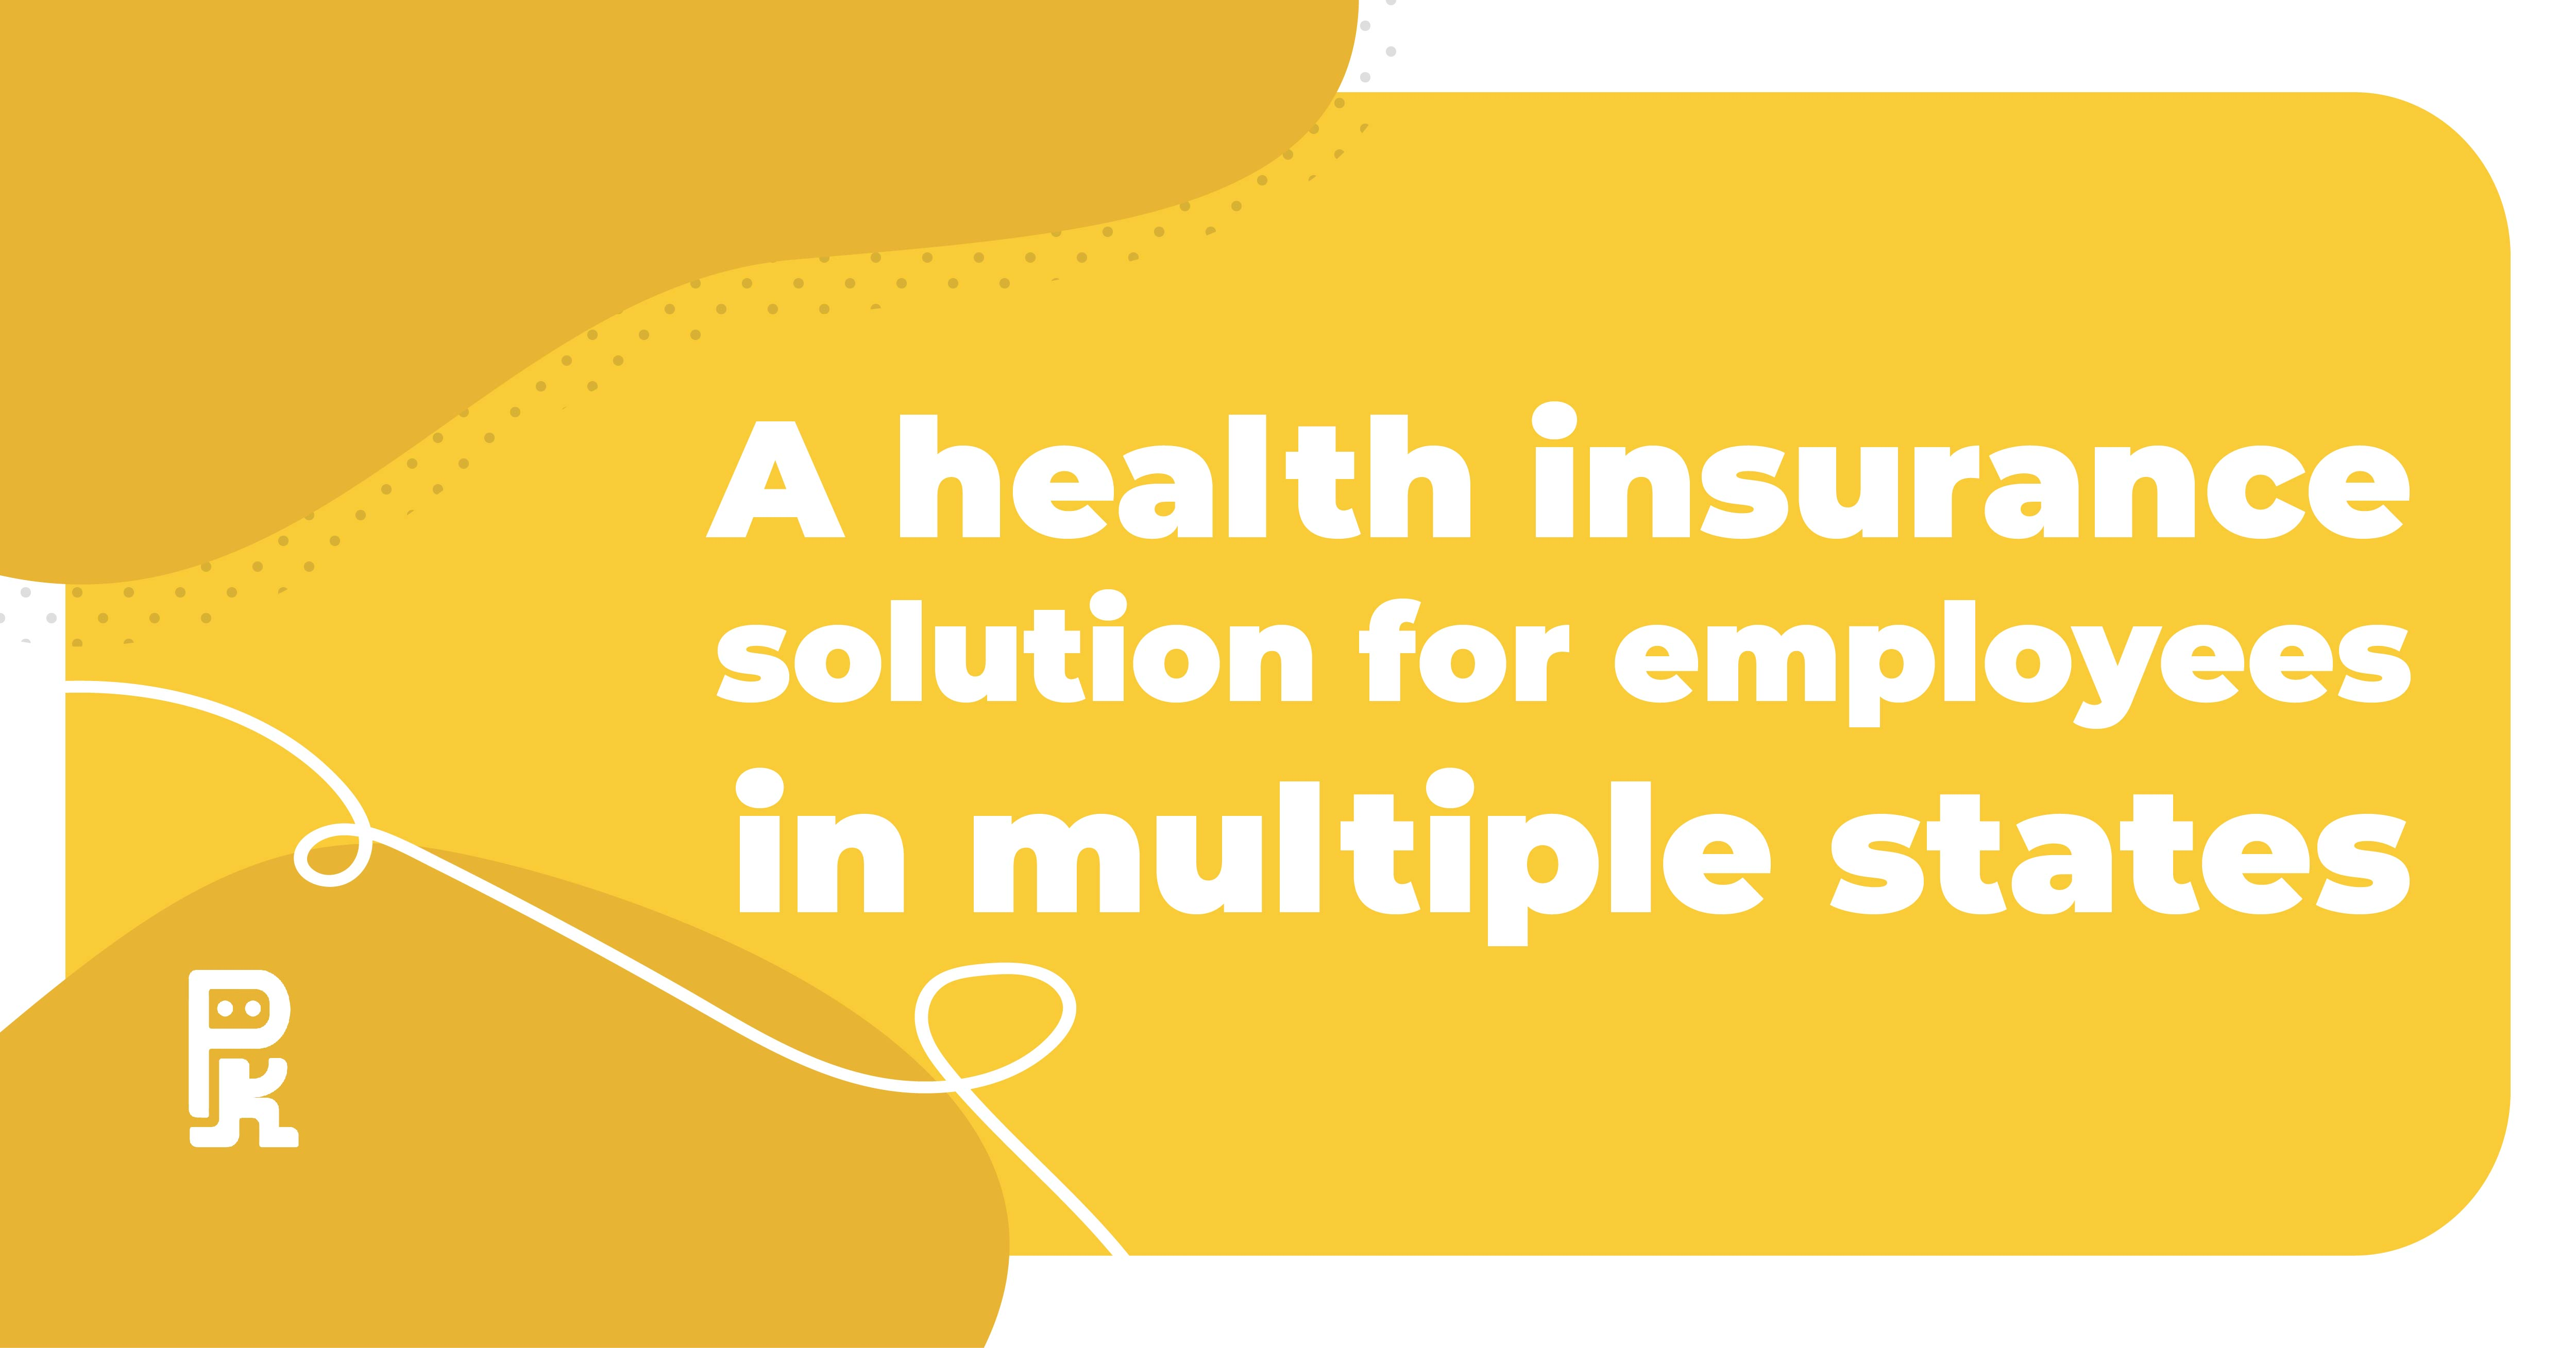 A health insurance solution for employees in multiple states